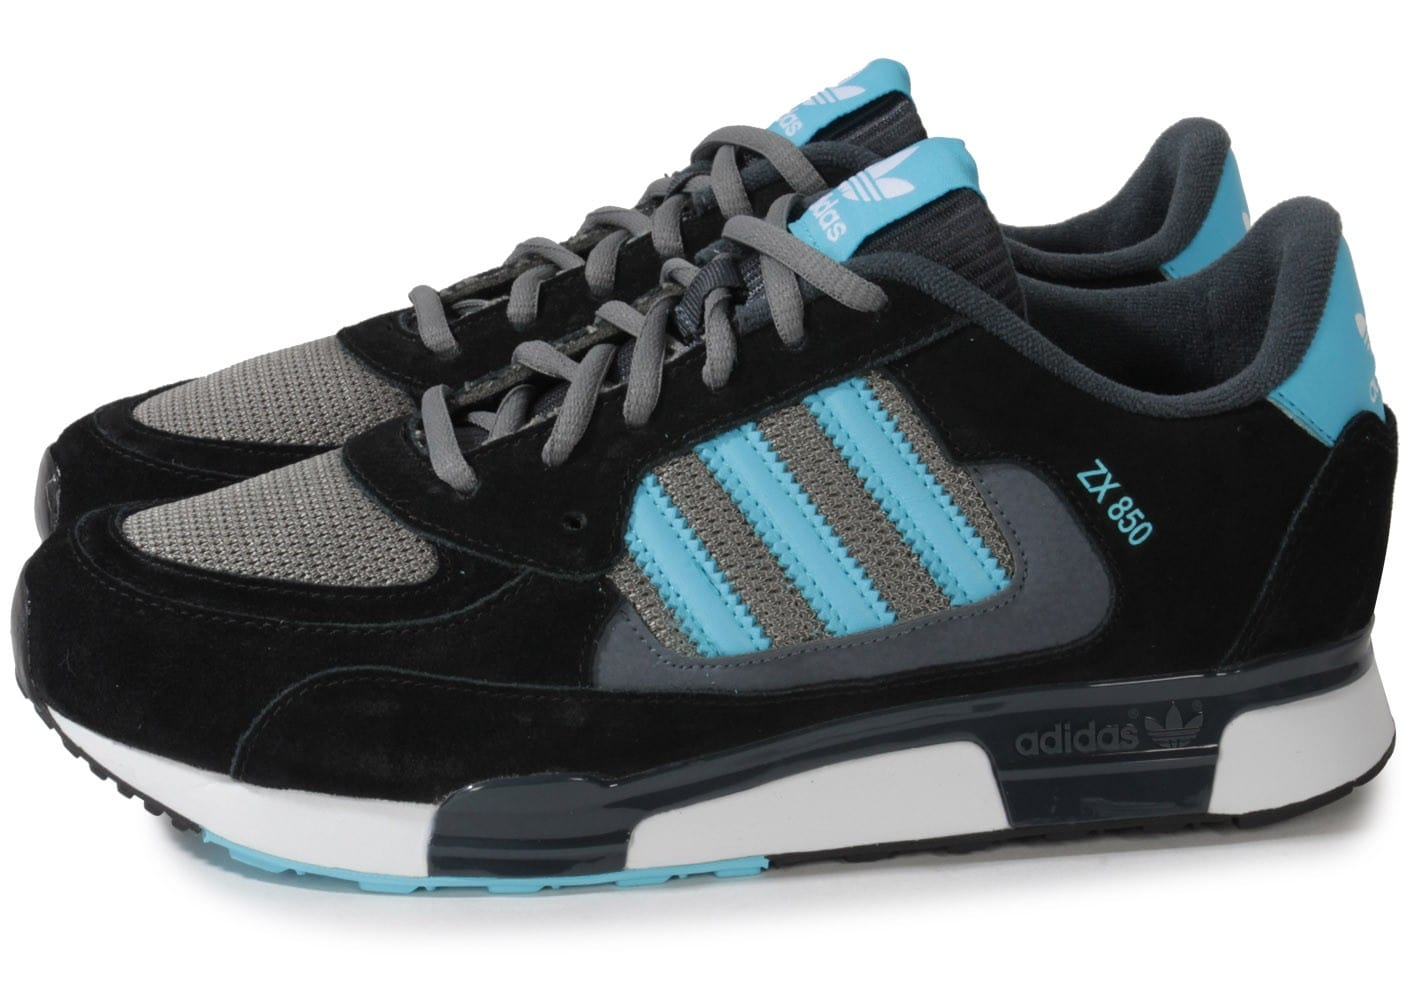 adidas Zx 850 Noire - Chaussures Baskets